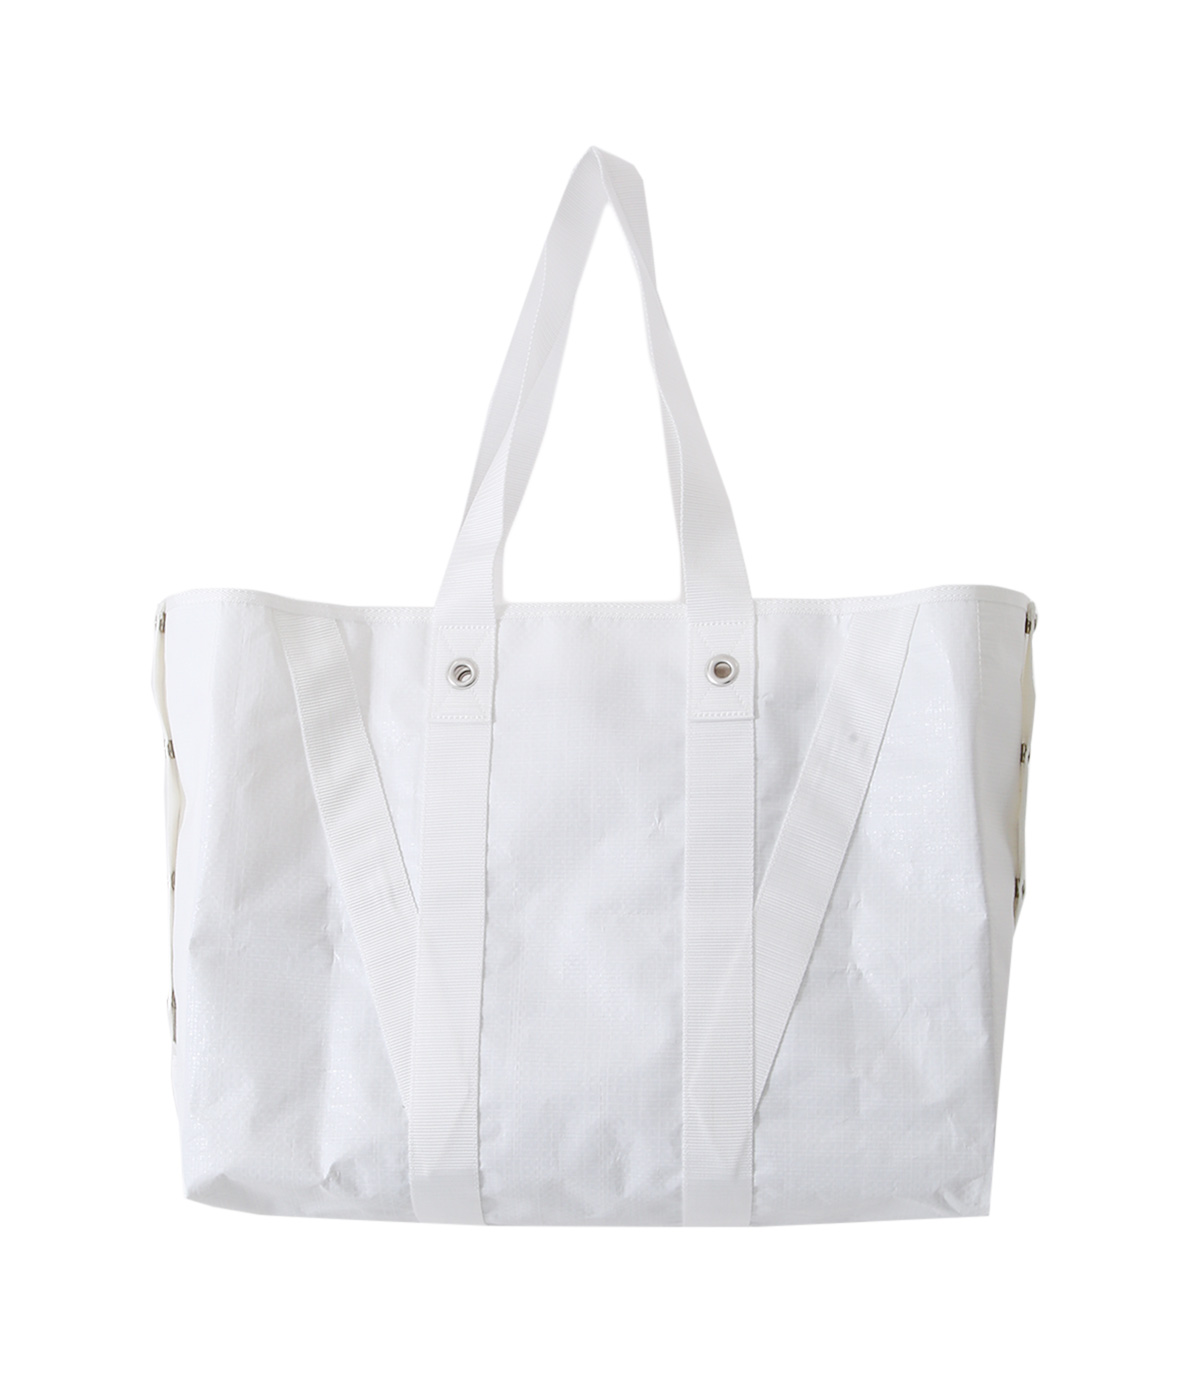 Y PILLAR LEISURE TOTE BAGS M